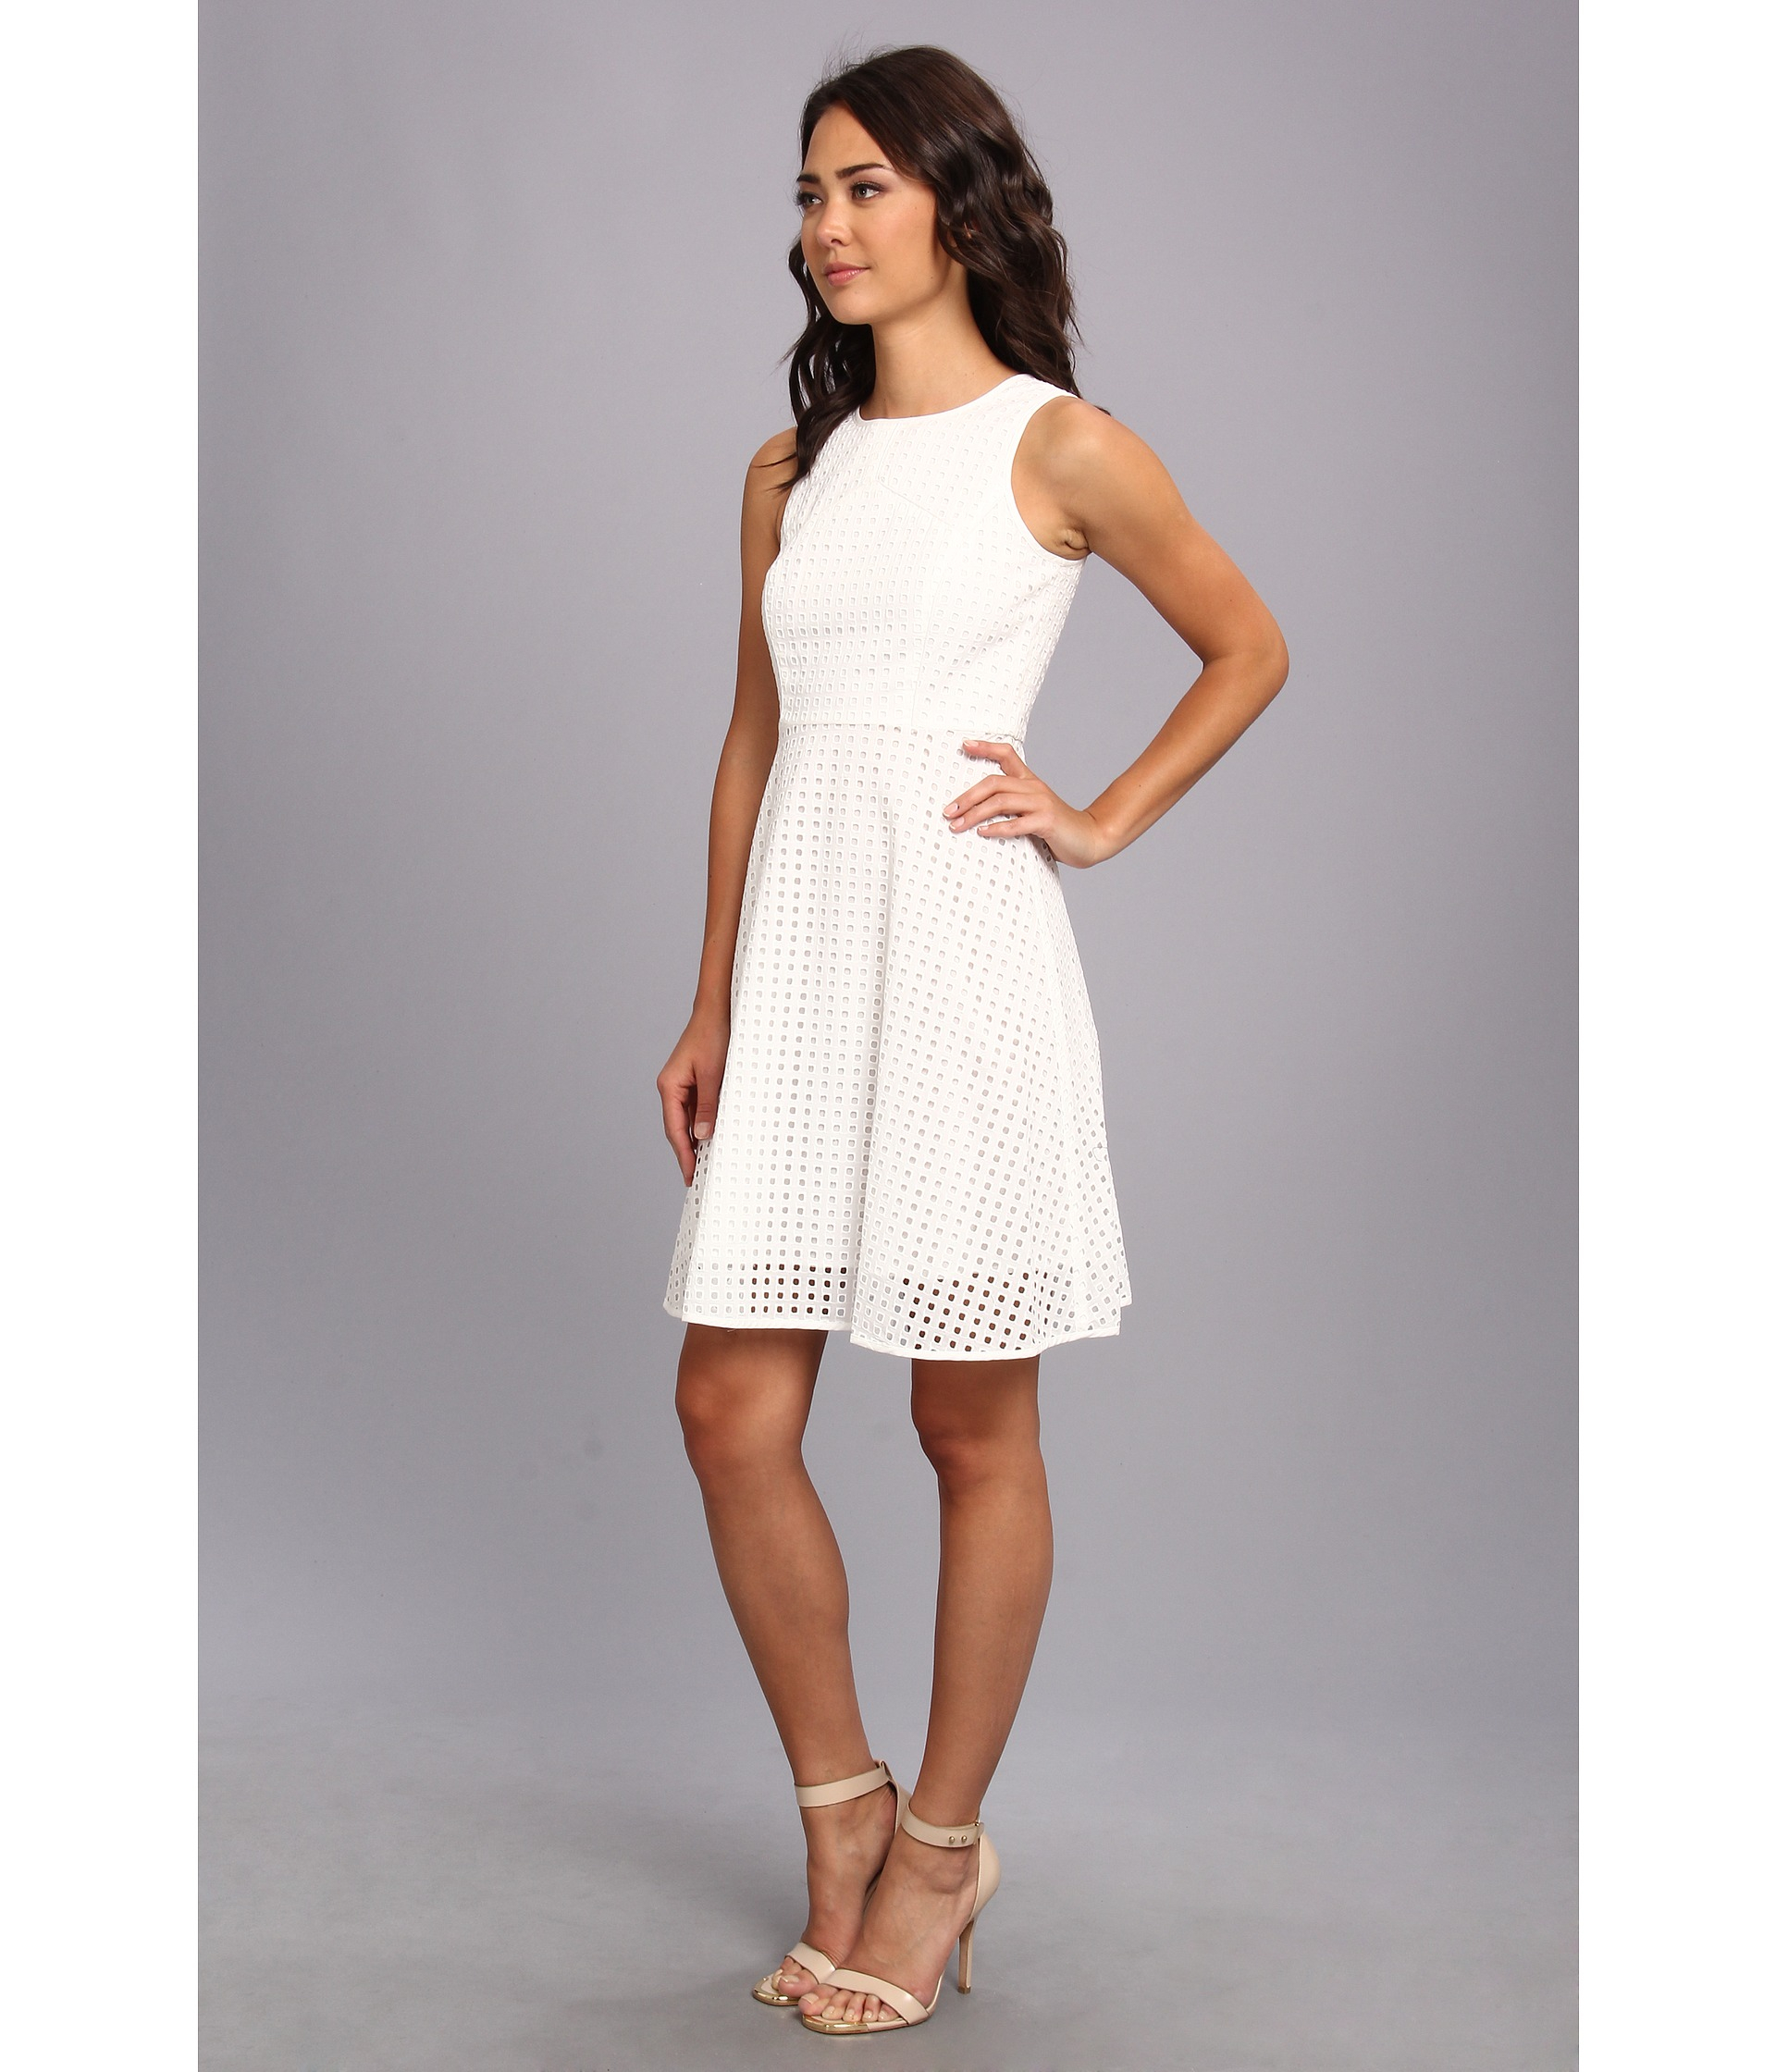 Vince camuto Square Eyelet Dress in White - Lyst